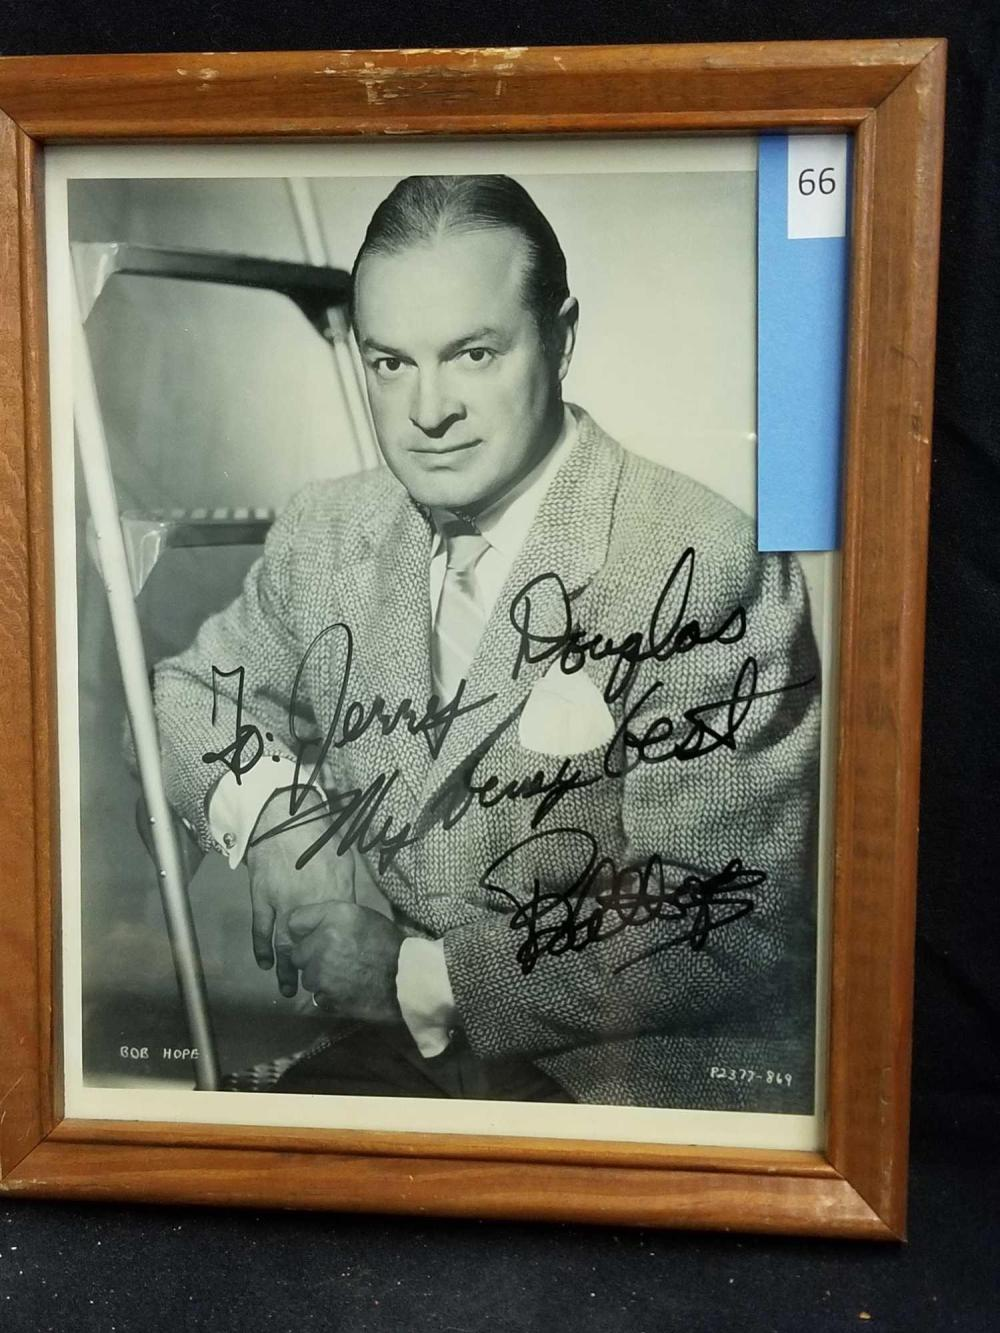 BOB HOPE BLACK & WHITE PUBLICITY PHOTO